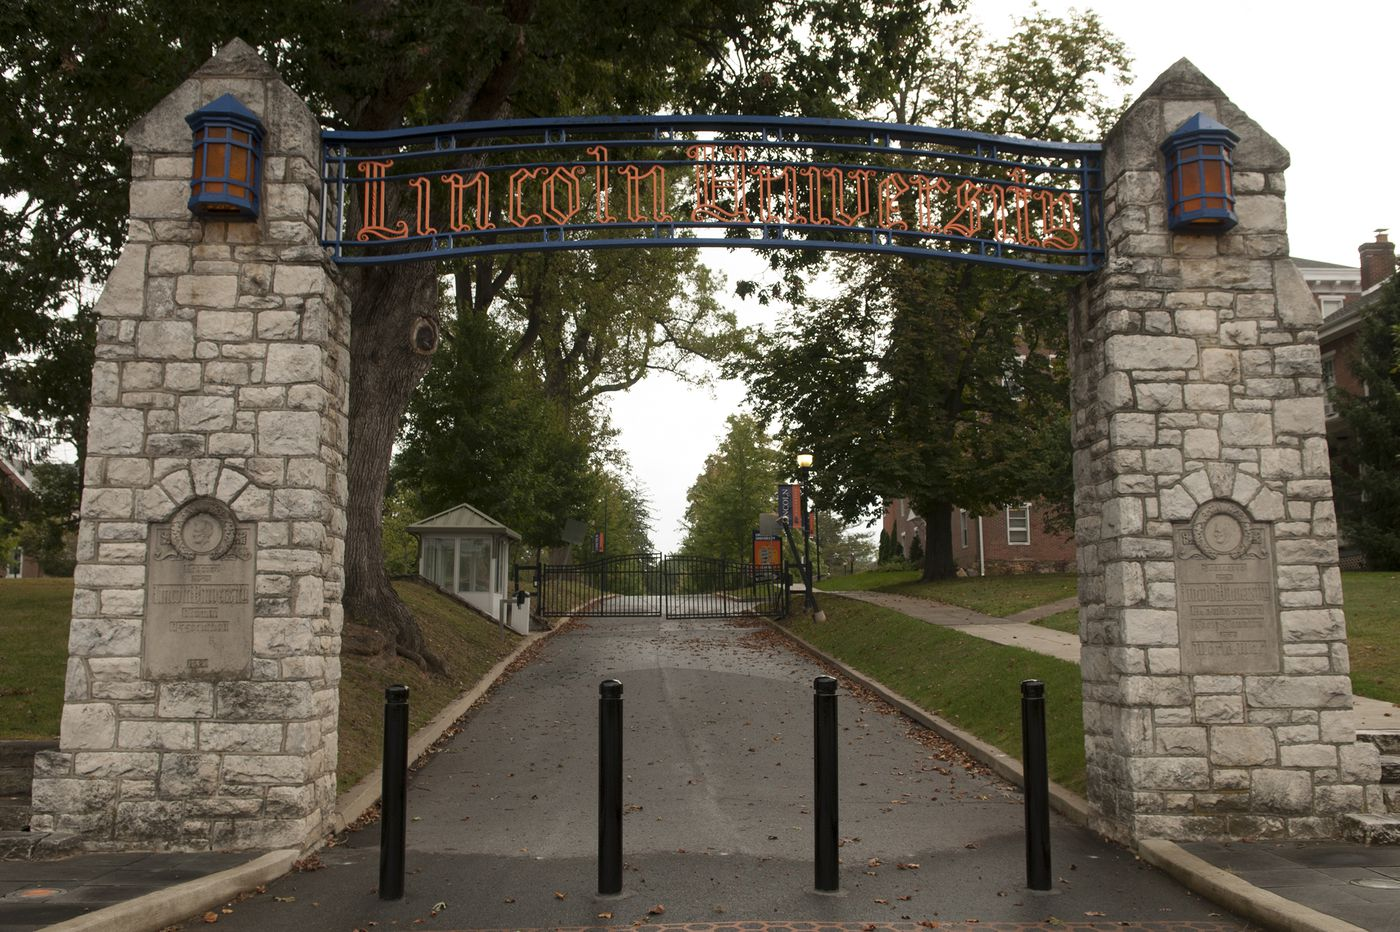 Students arrested, security officer assaulted in brawl at Lincoln University